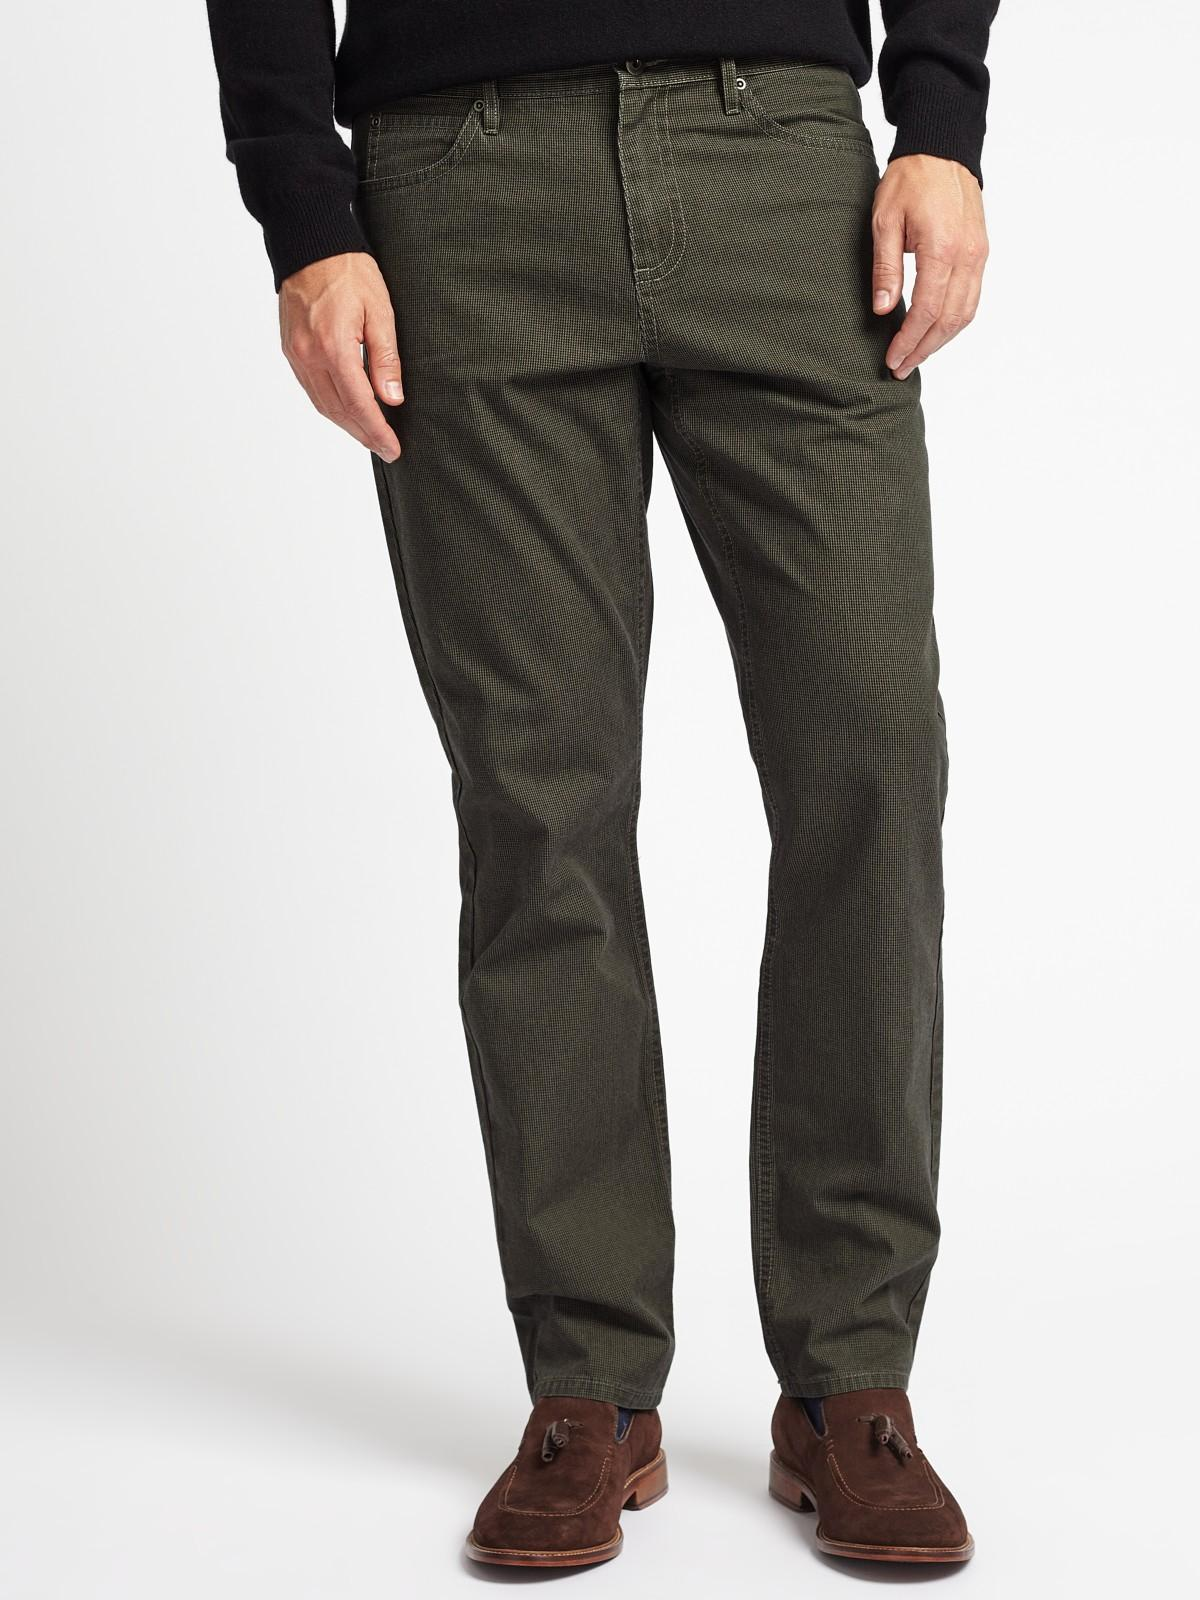 John Lewis Cotton Headland Washed 5 Pocket Trousers in Grey (Grey) for Men